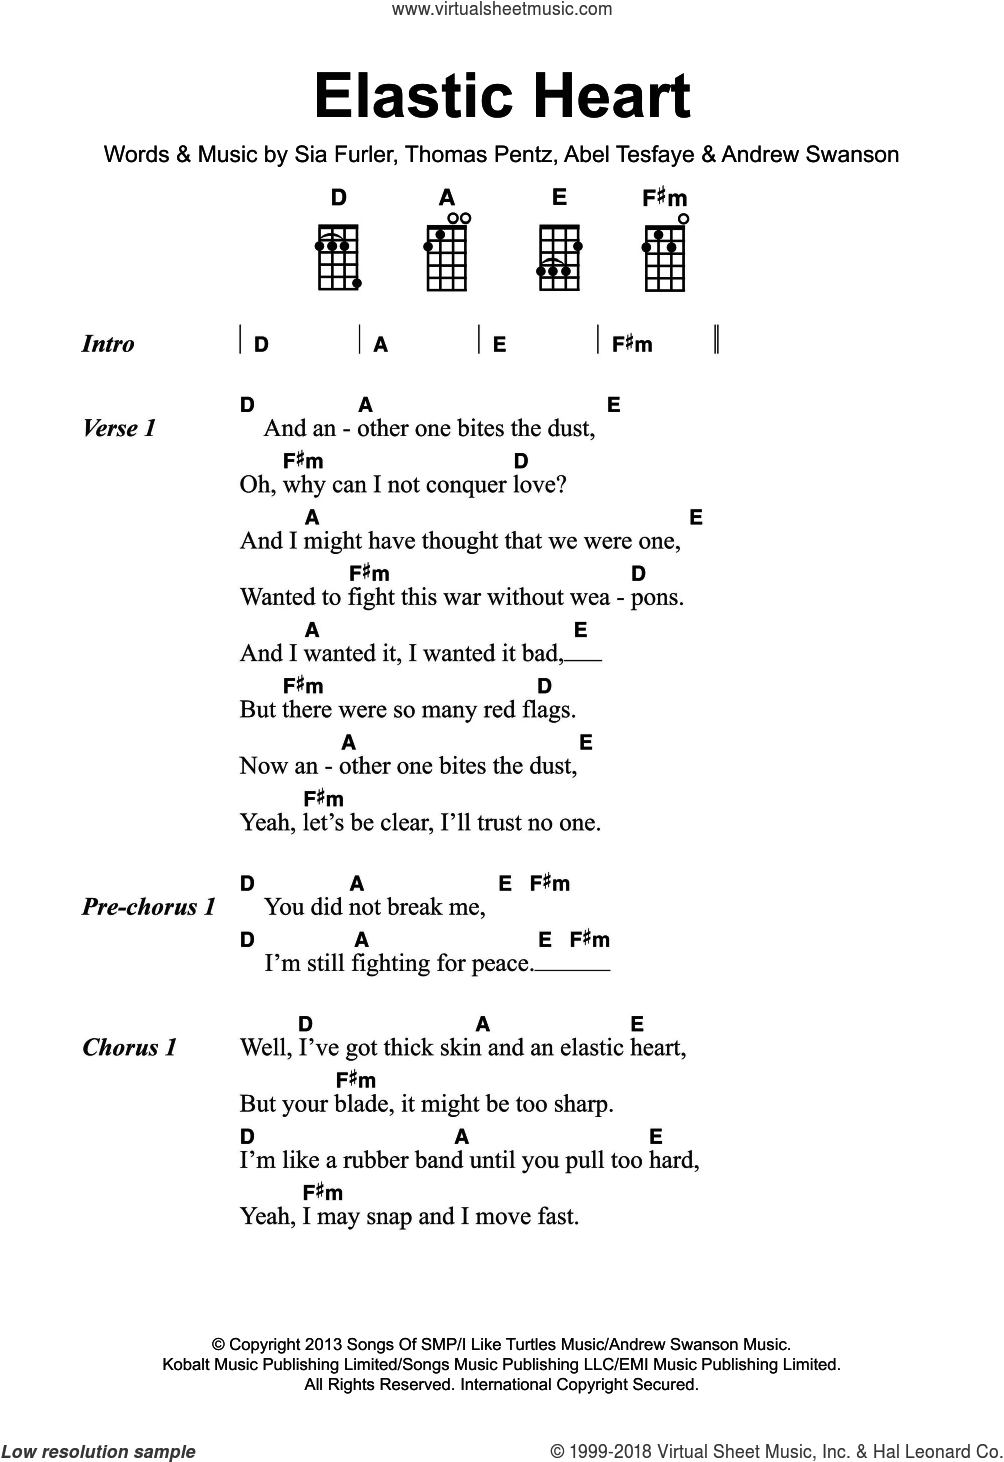 Elastic Heart sheet music for voice, piano or guitar by Sia, Abel Tesfaye, Andrew Swanson, Sia Furler and Thomas Wesley Pentz, intermediate